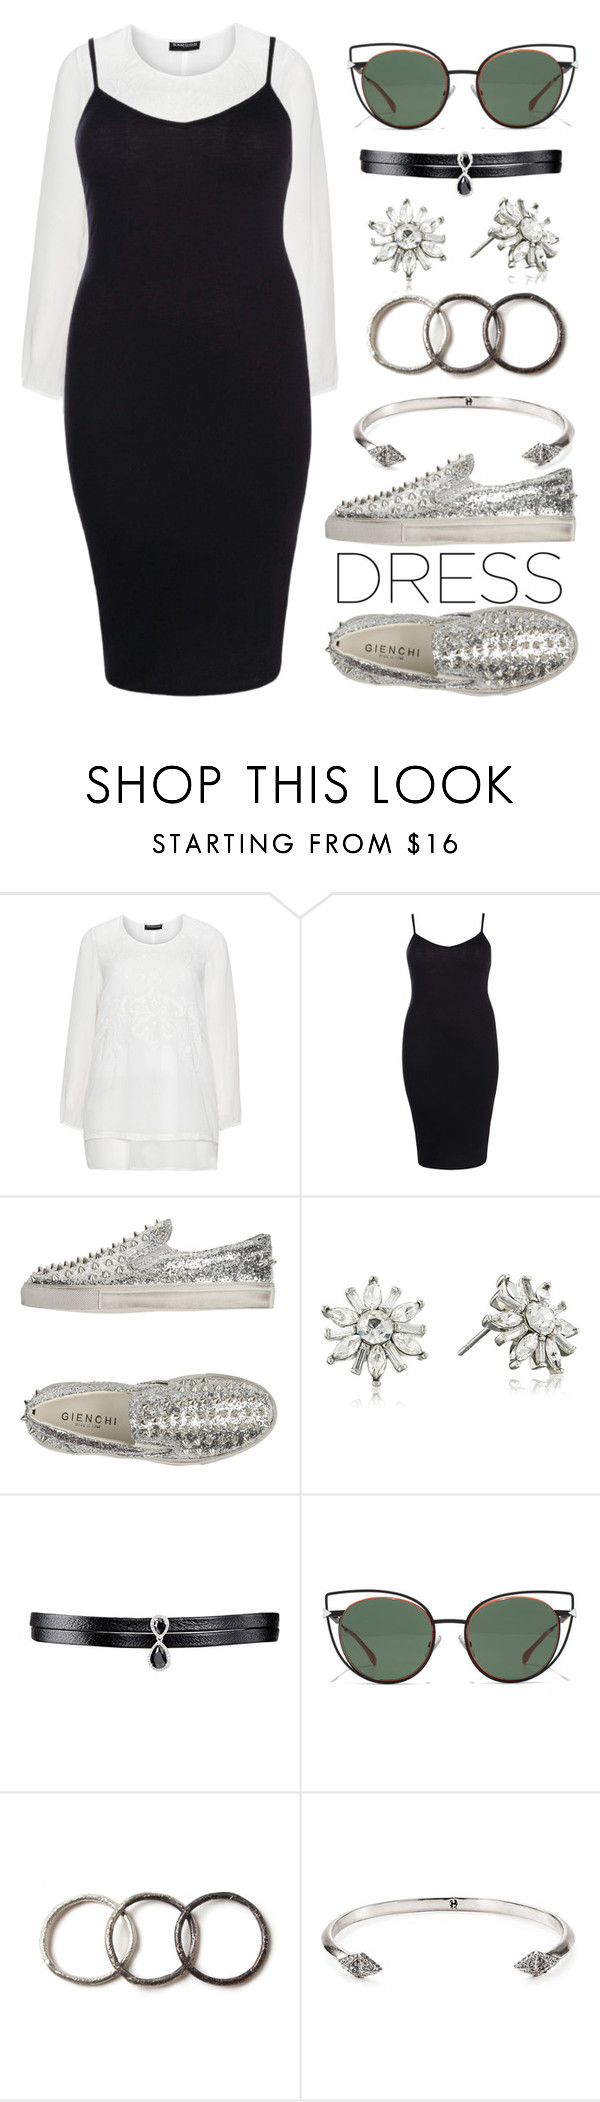 """""""Street Style - Fall Look: Plus Size Dresses"""" by may-calista ❤ liked on Polyvore featuring Samoon, Boohoo, GIENCHI, Carolee, Fallon, Fendi, Pearls Before Swine, House of Harlow 1960, StreetStyle and Fall"""